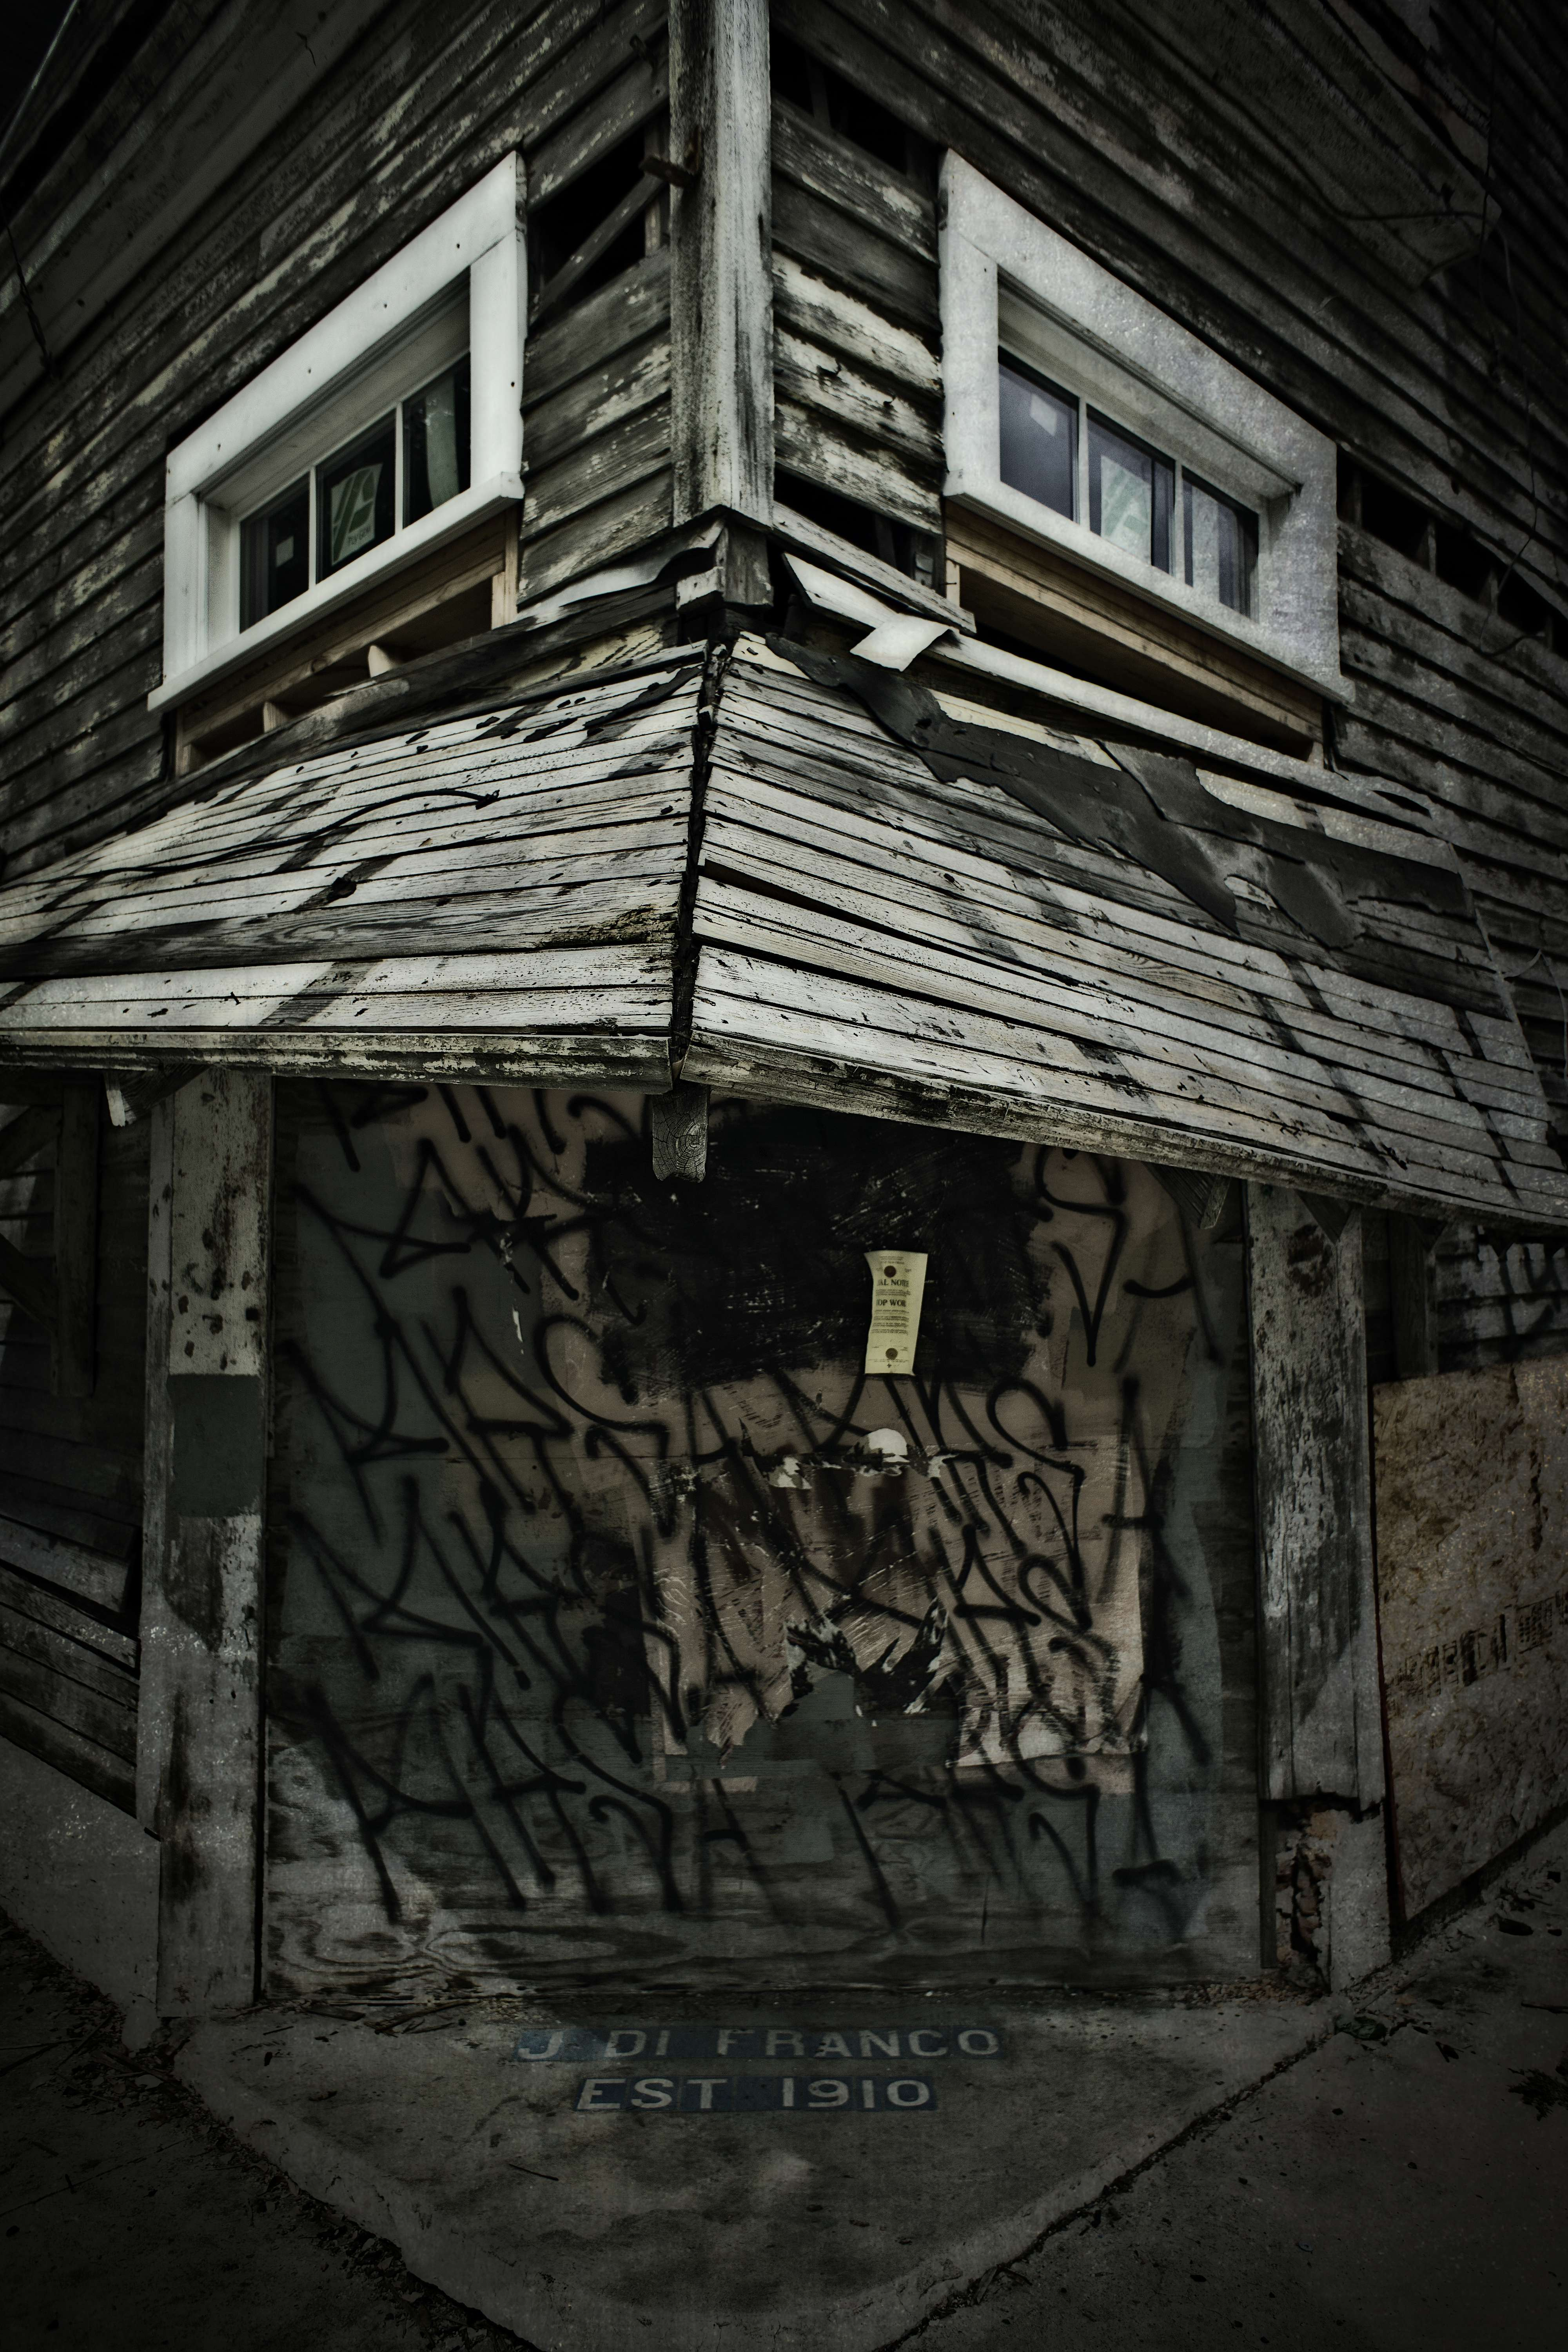 Once, there was a corner store. Now, there is a boarded up old building.